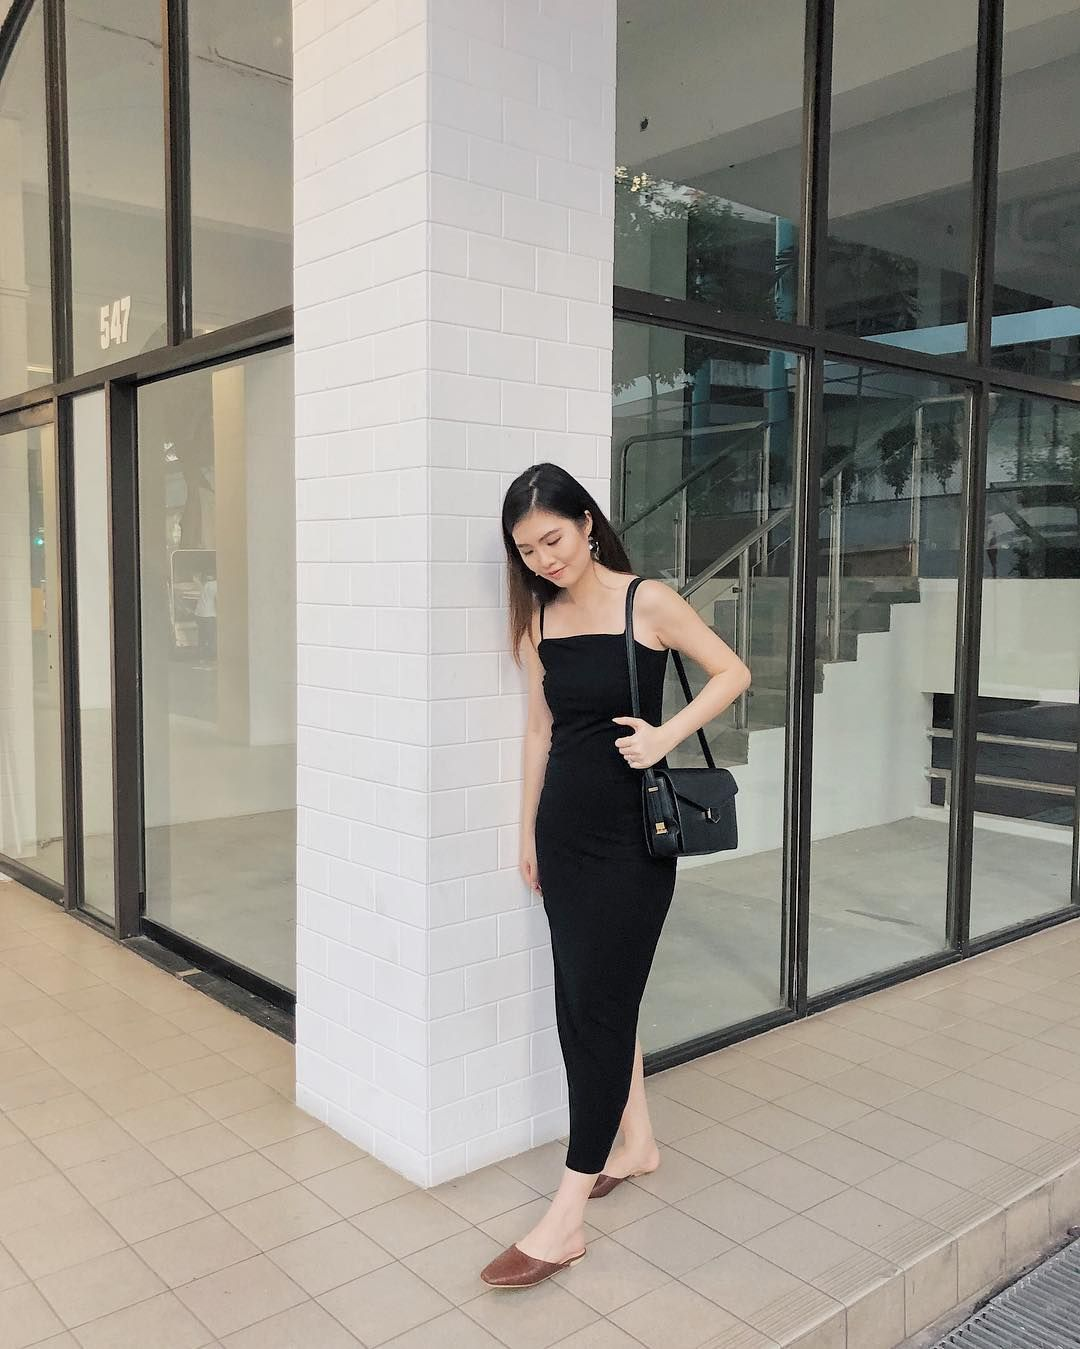 e8c4eab5c52d3 Yesterday's date night outfit 🖤 (also one of the best bodycon ...